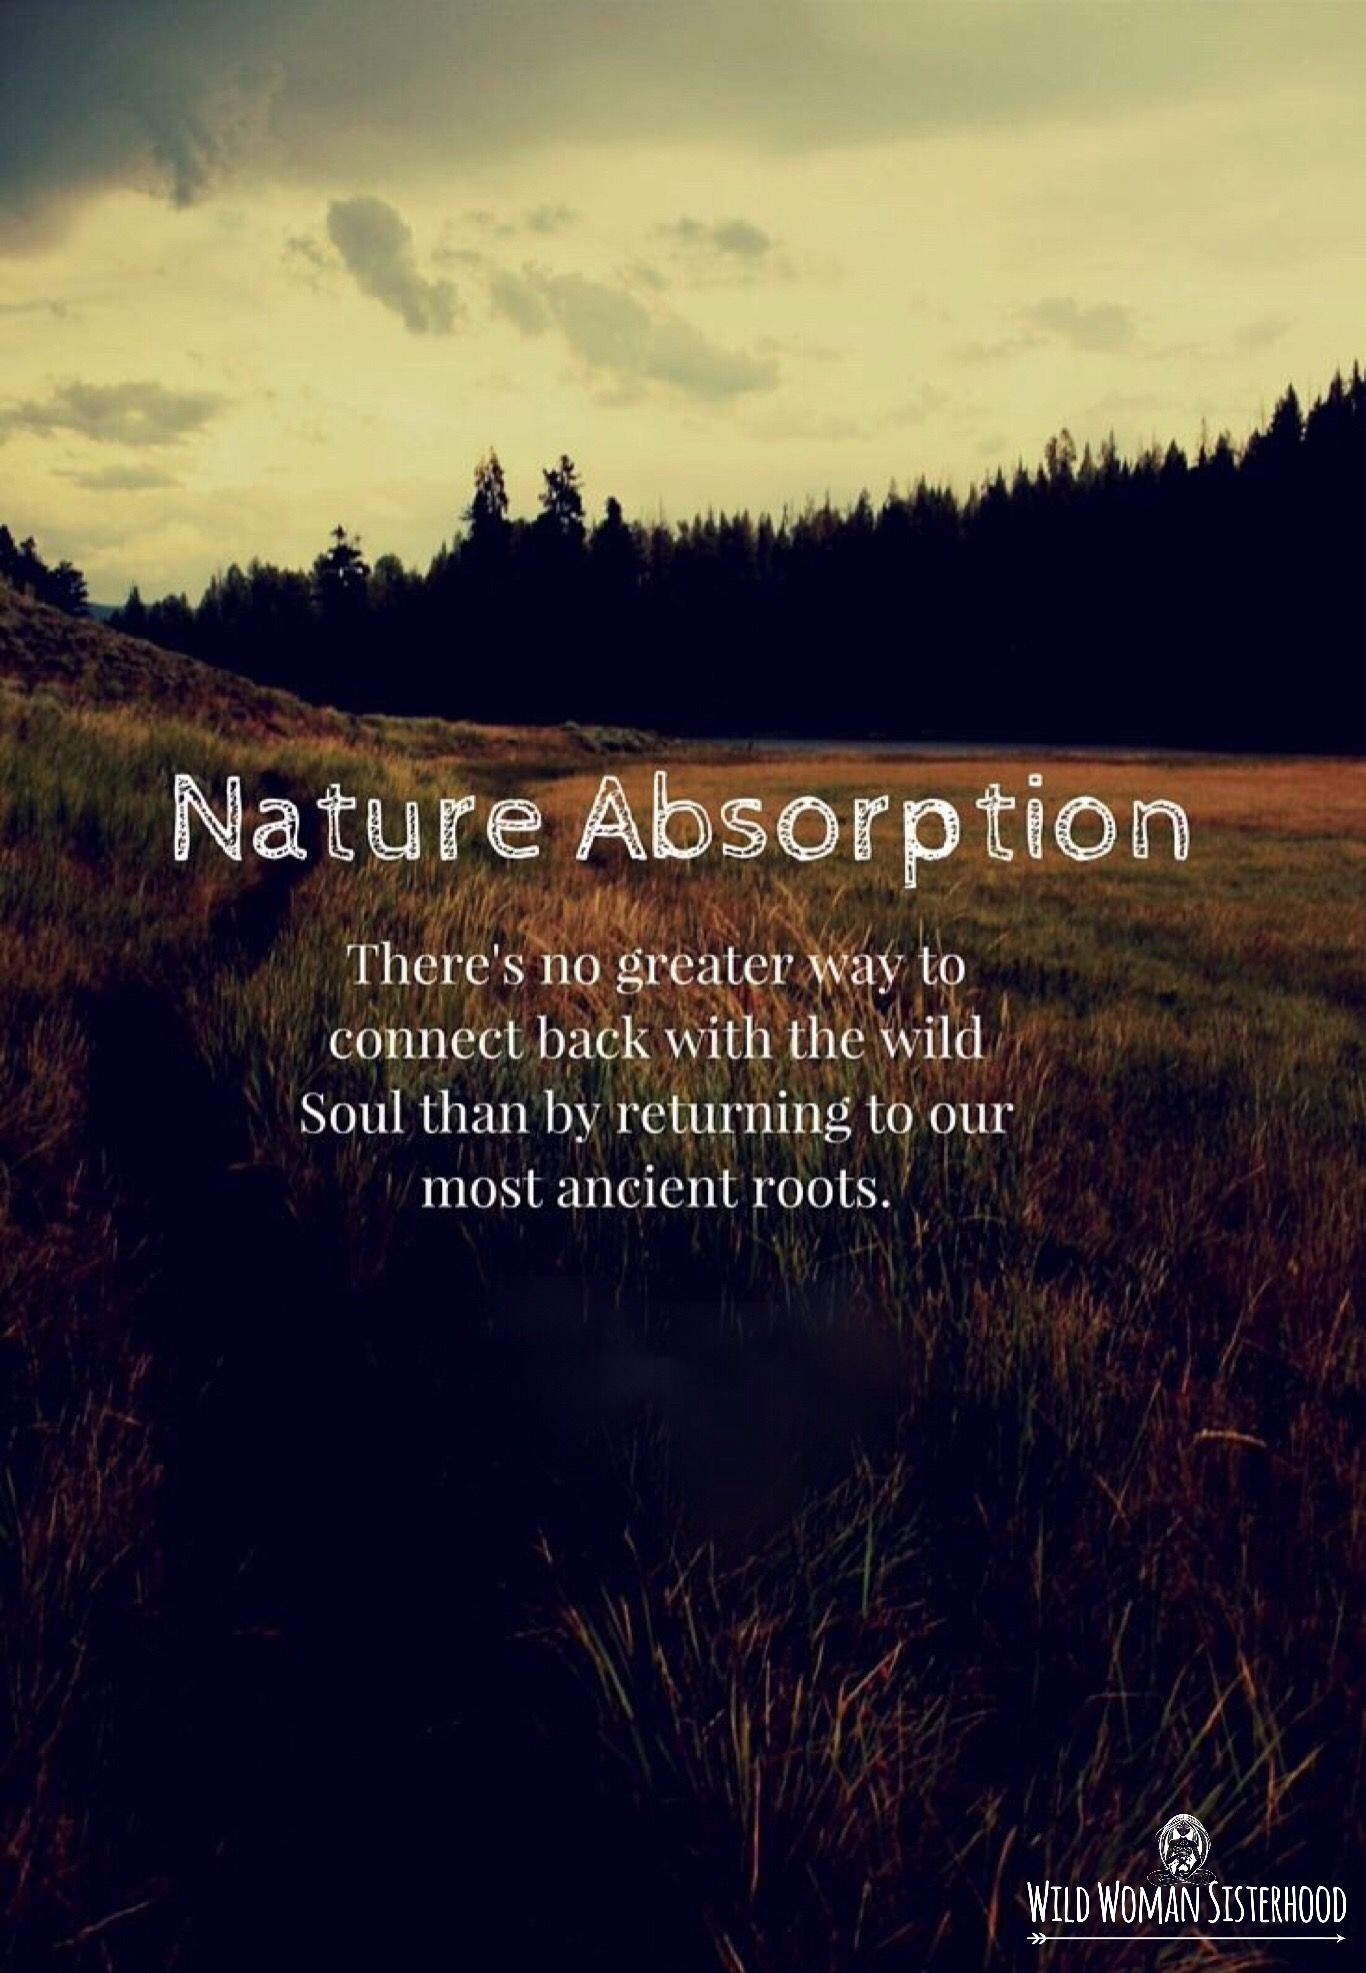 Passion Fuels Our Journey Inspiration Guides It Nature Quotes Nature Quotes Inspirational Nature